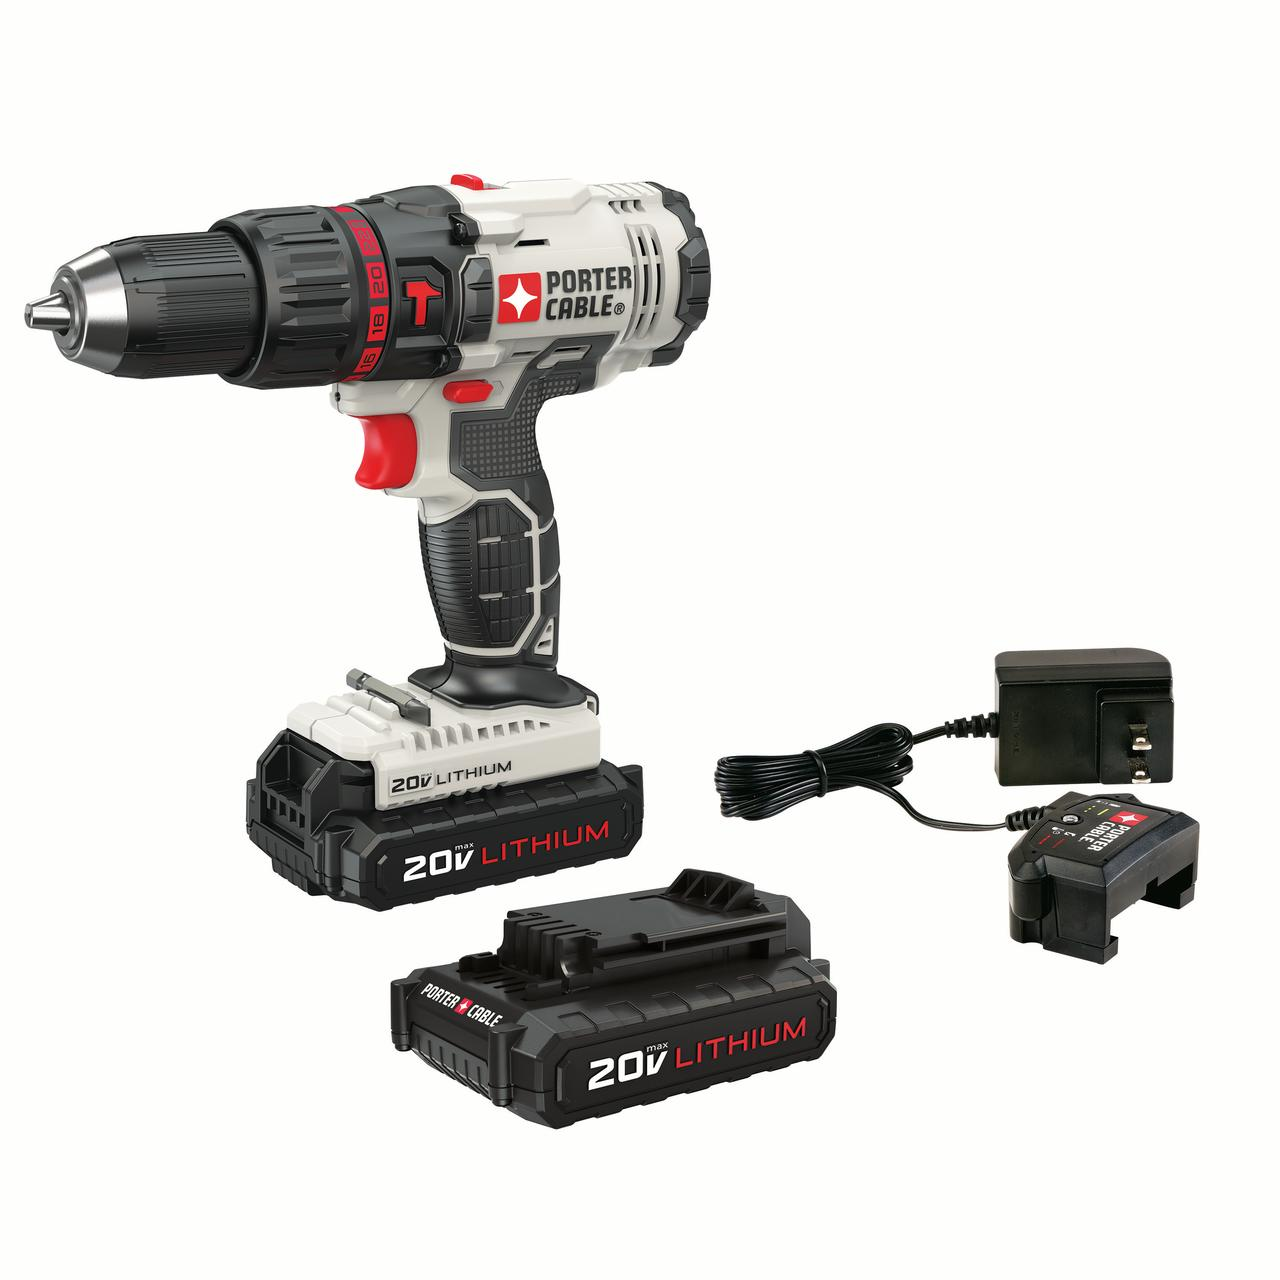 PORTER CABLE 20-Volt Max 1/2-Inch Lithium-Ion Compact Cordless Hammer Drill With 2 Batteries, PCC621LB